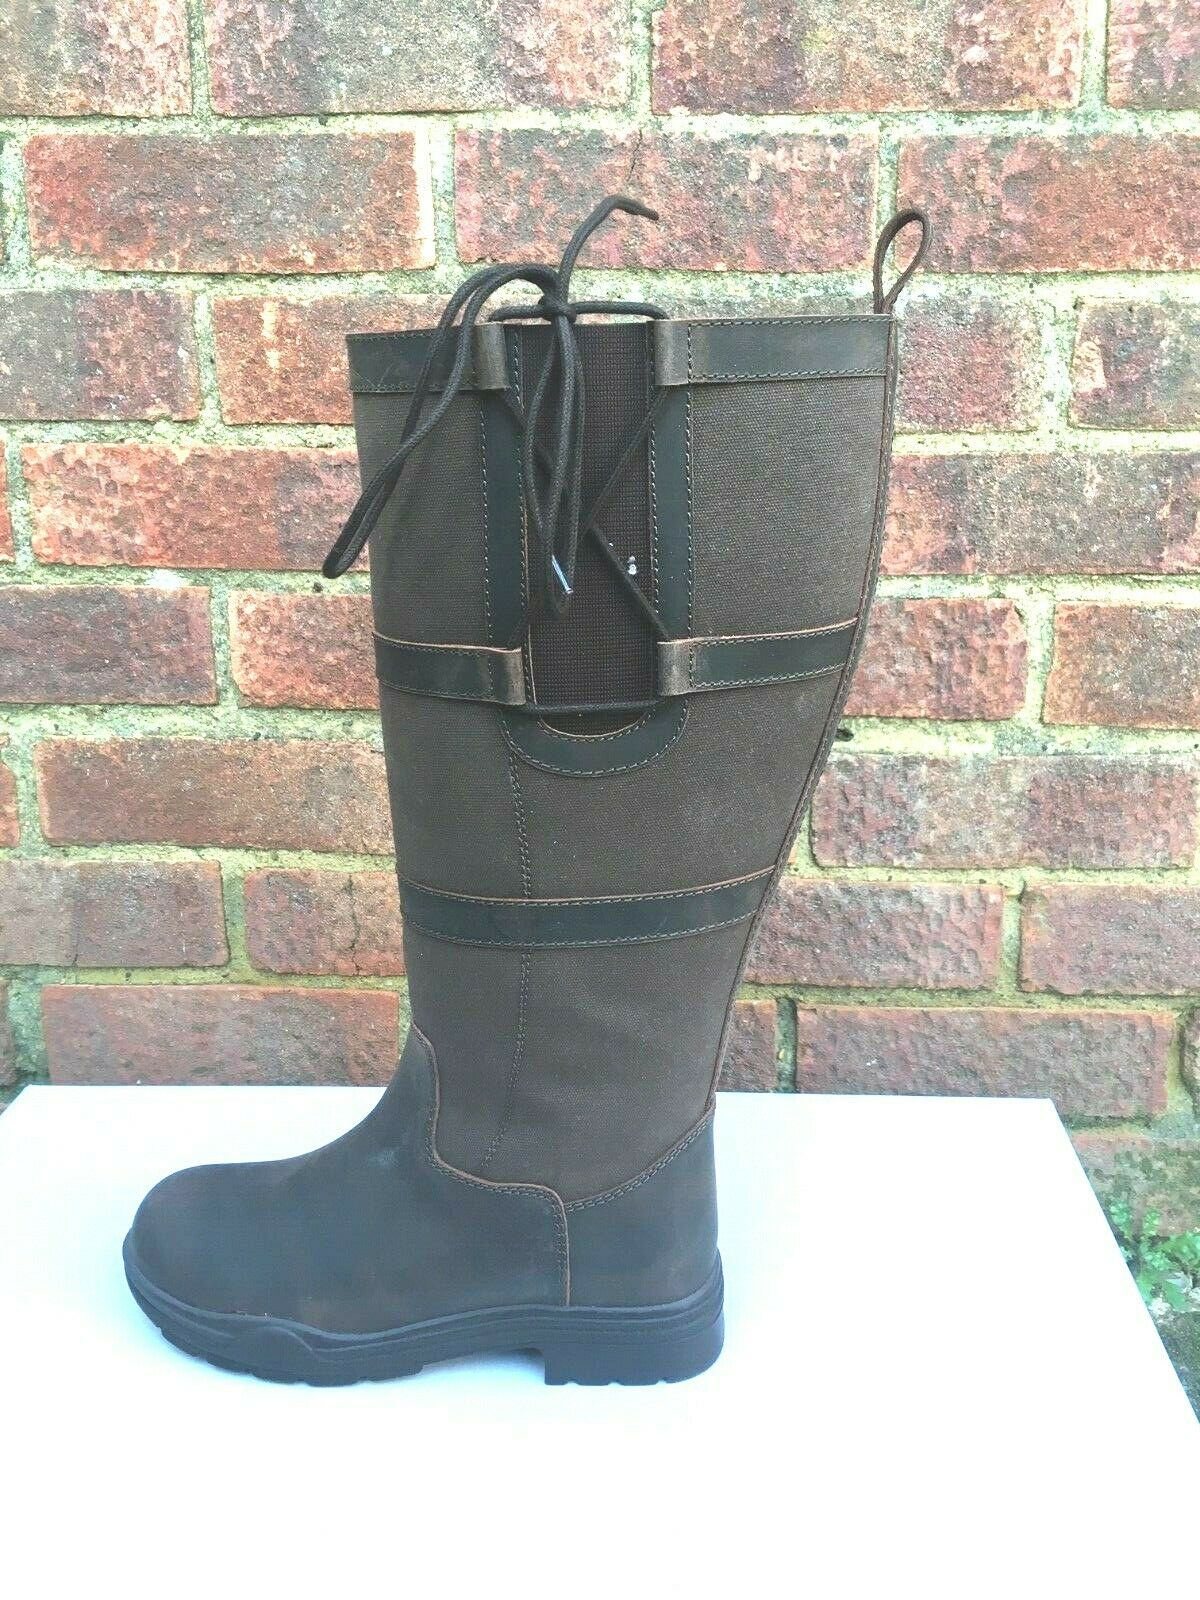 Polestar Country//Riding Boots Long//Walking Leather Horse Waterproof UK 5//38